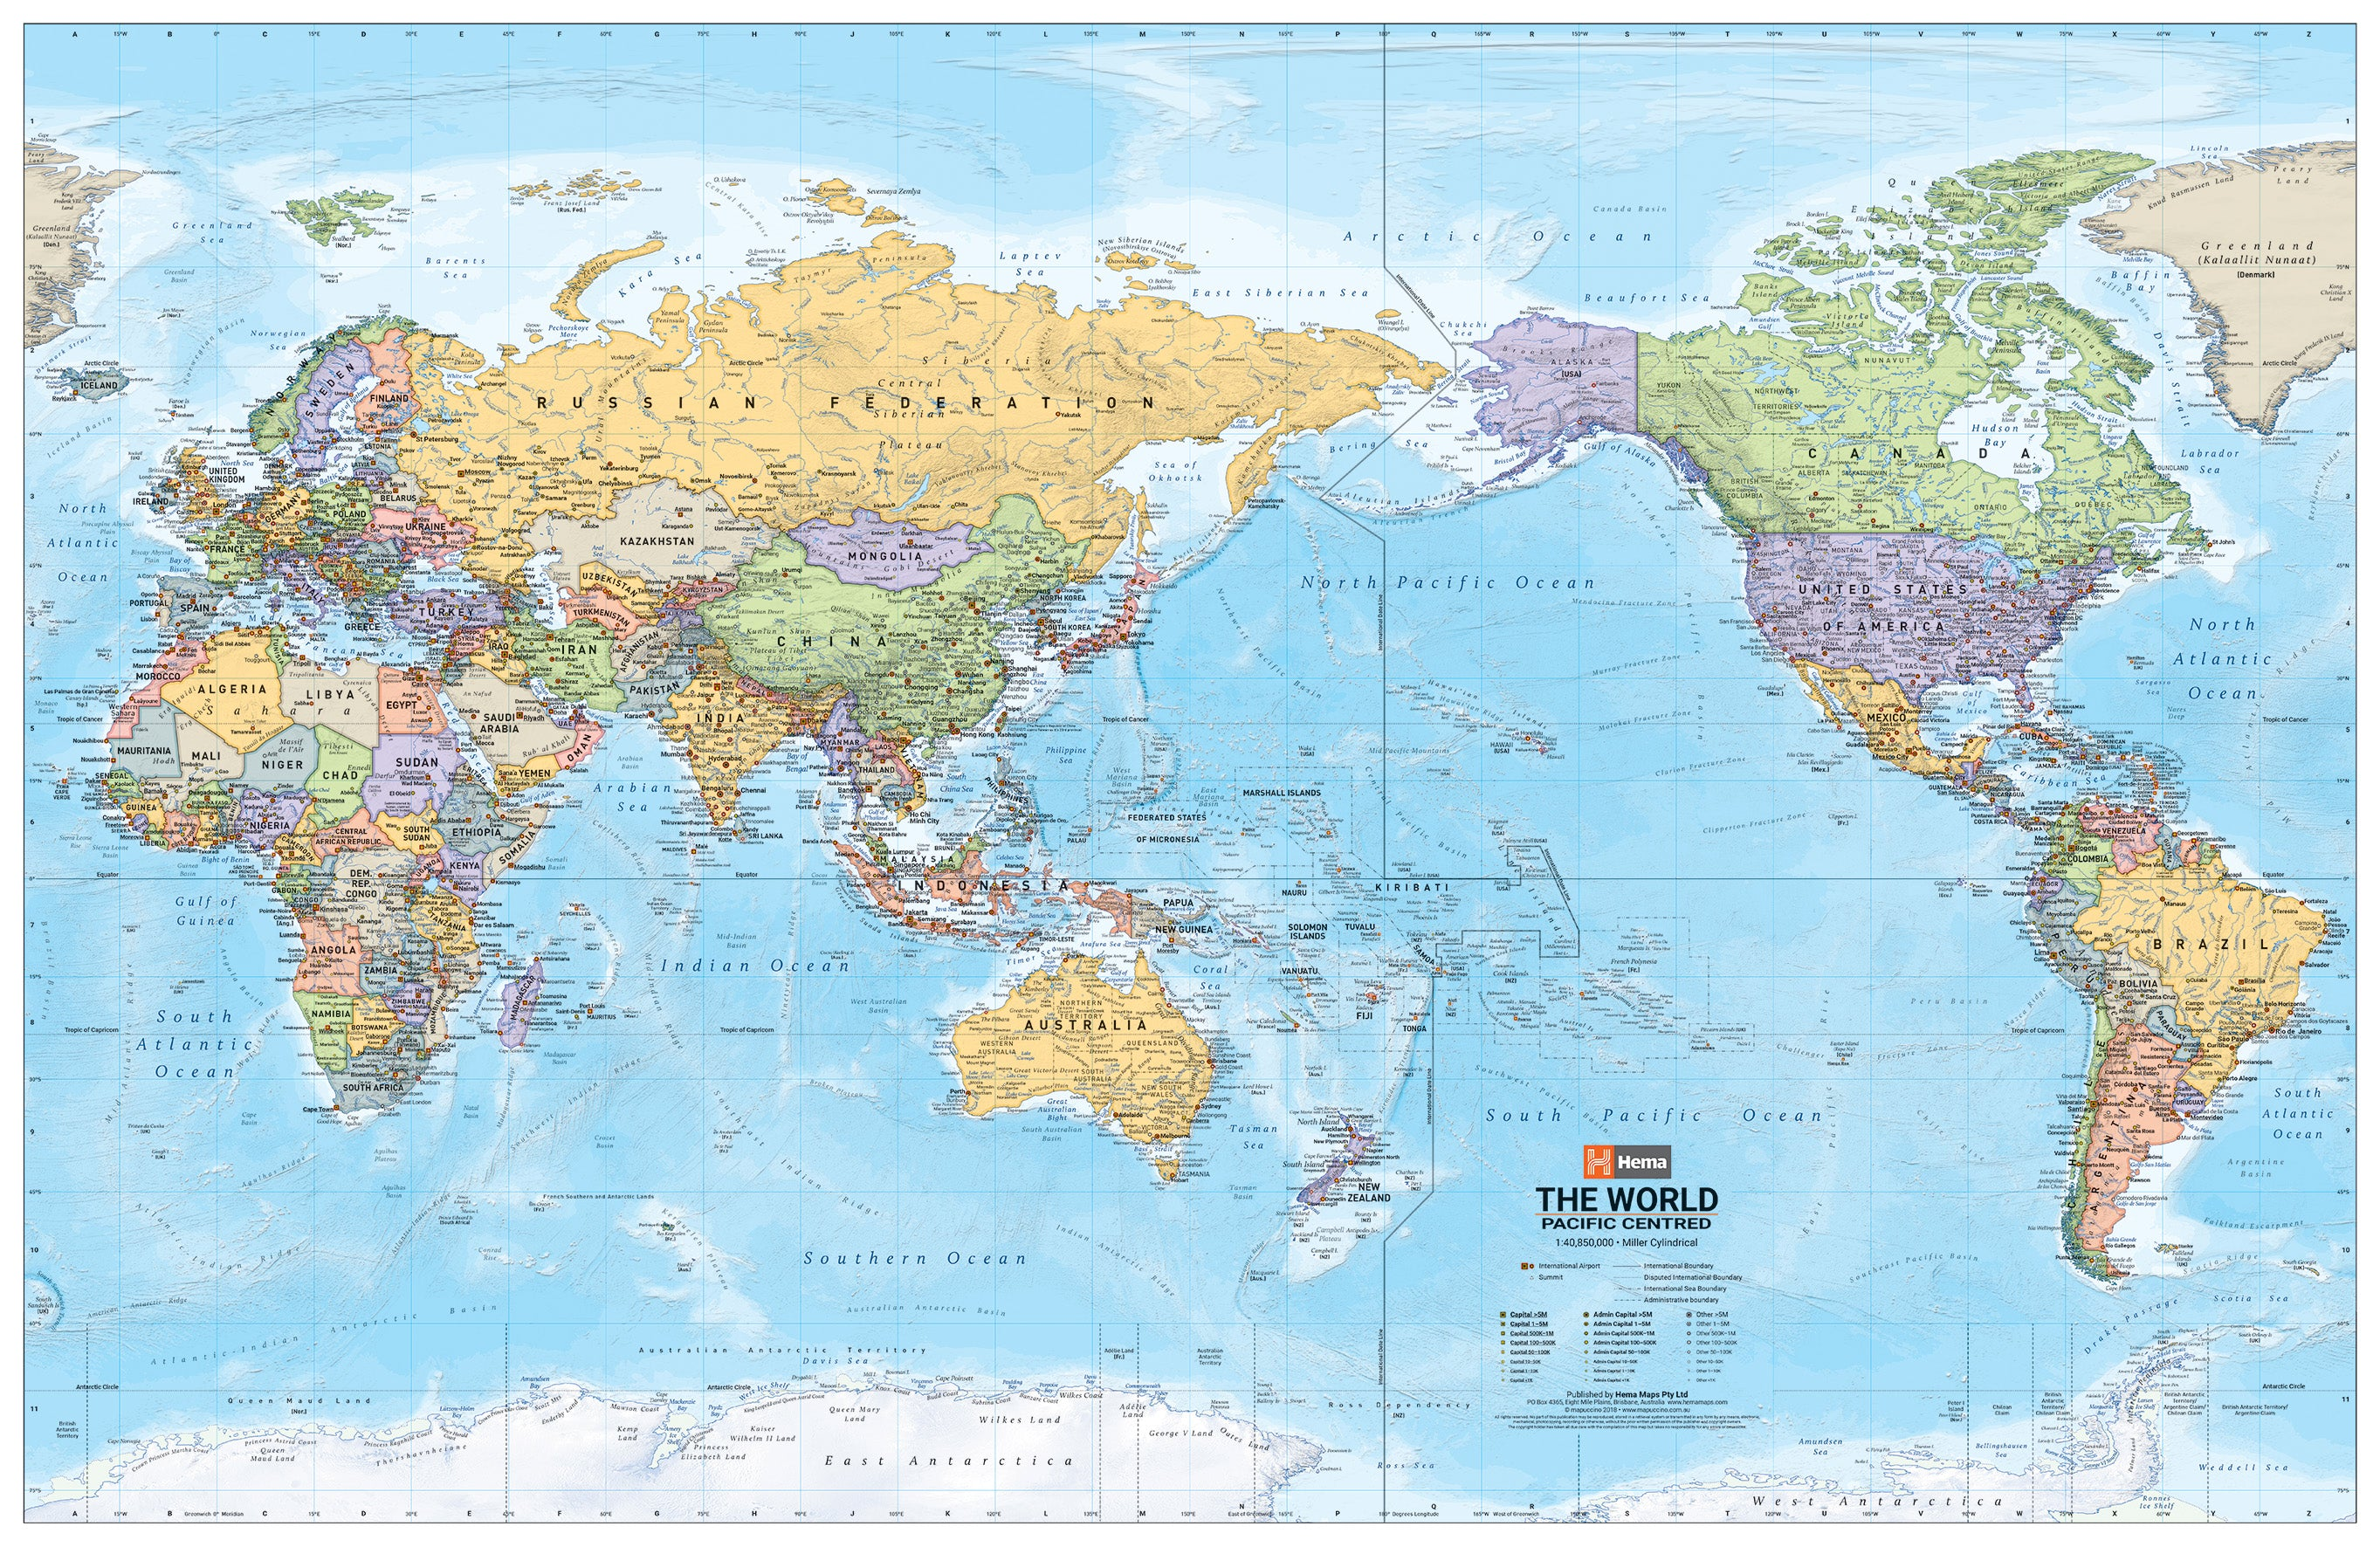 Picture of: World Political Pacific Centred Map 1000×650 Laminated Hema Maps Online Shop